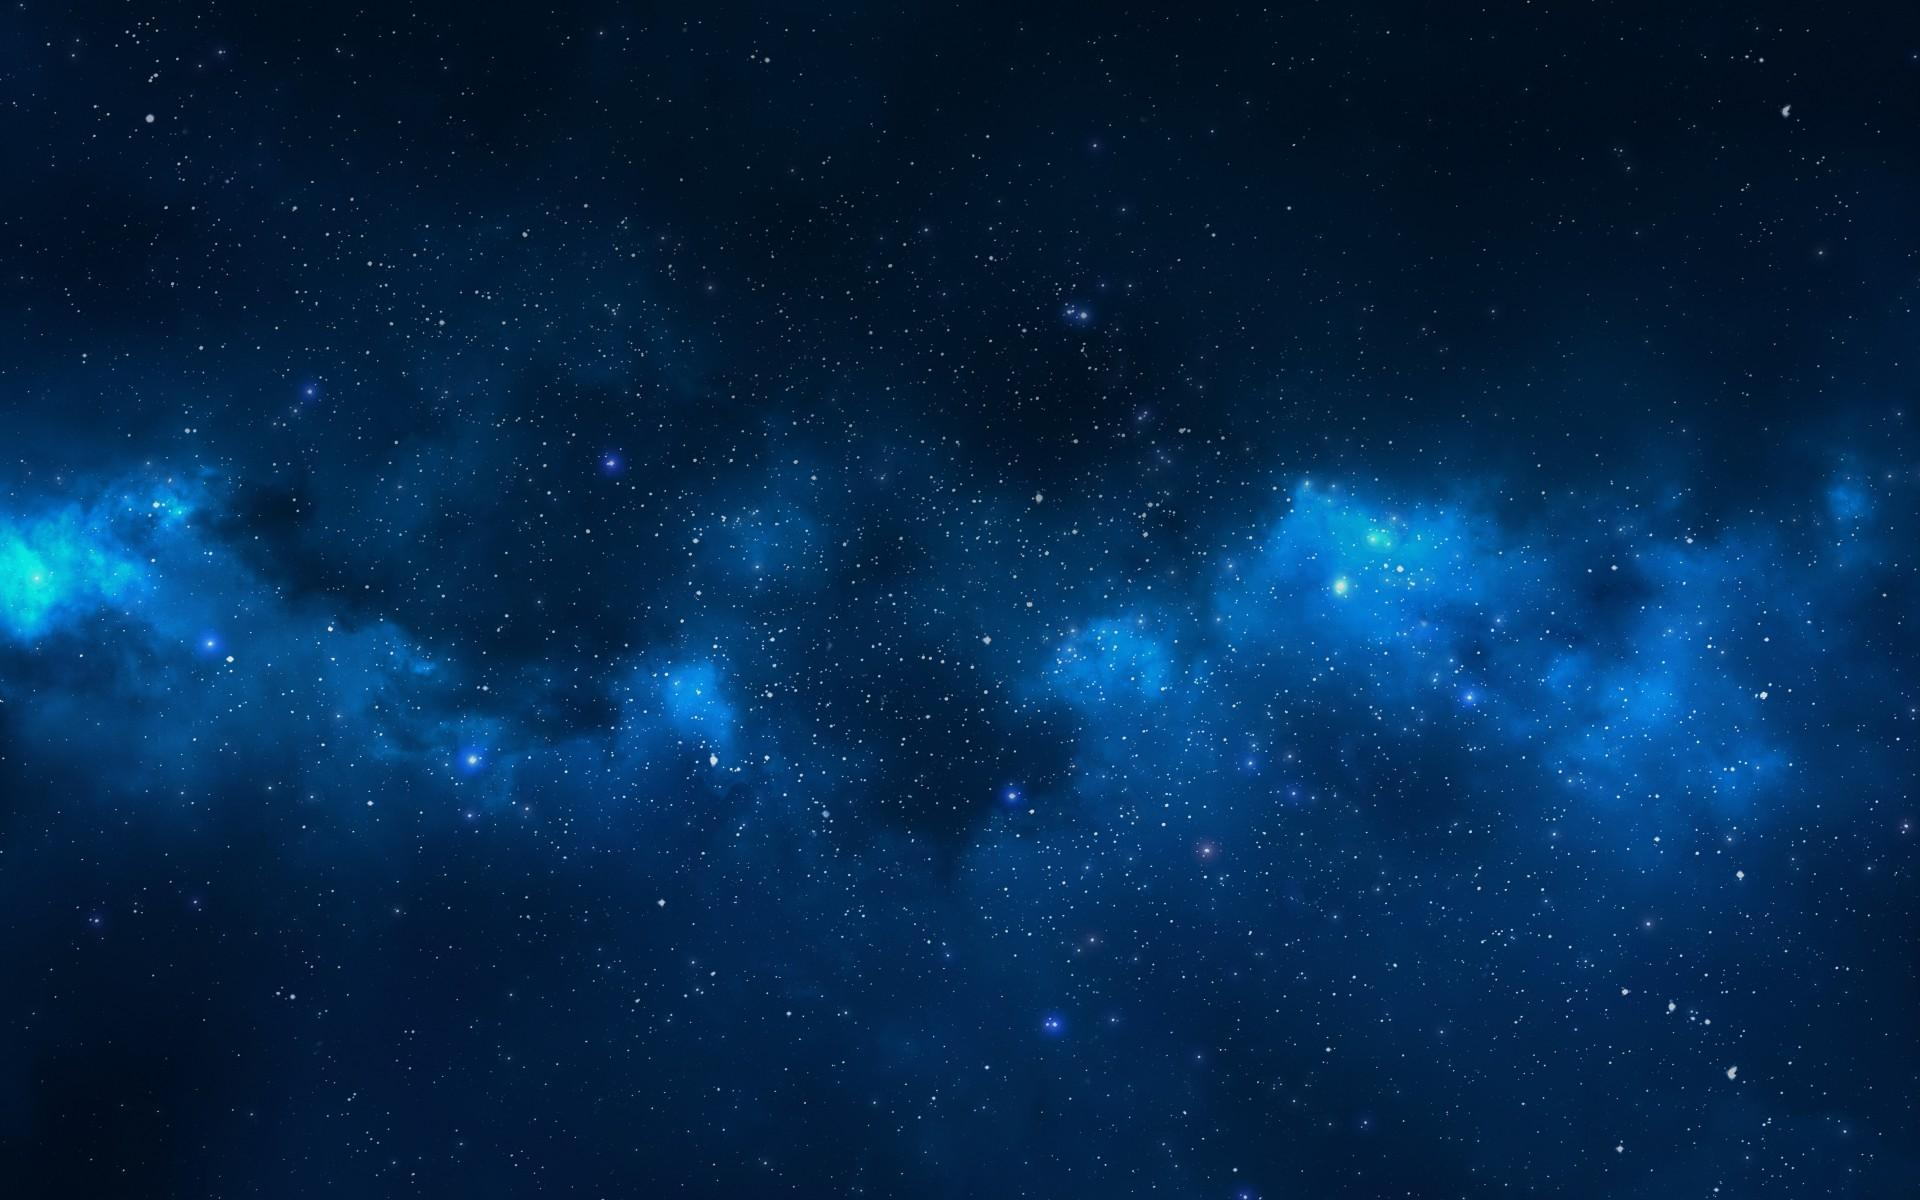 Sky Night Stars Live Wallpaper For Android Apk Download